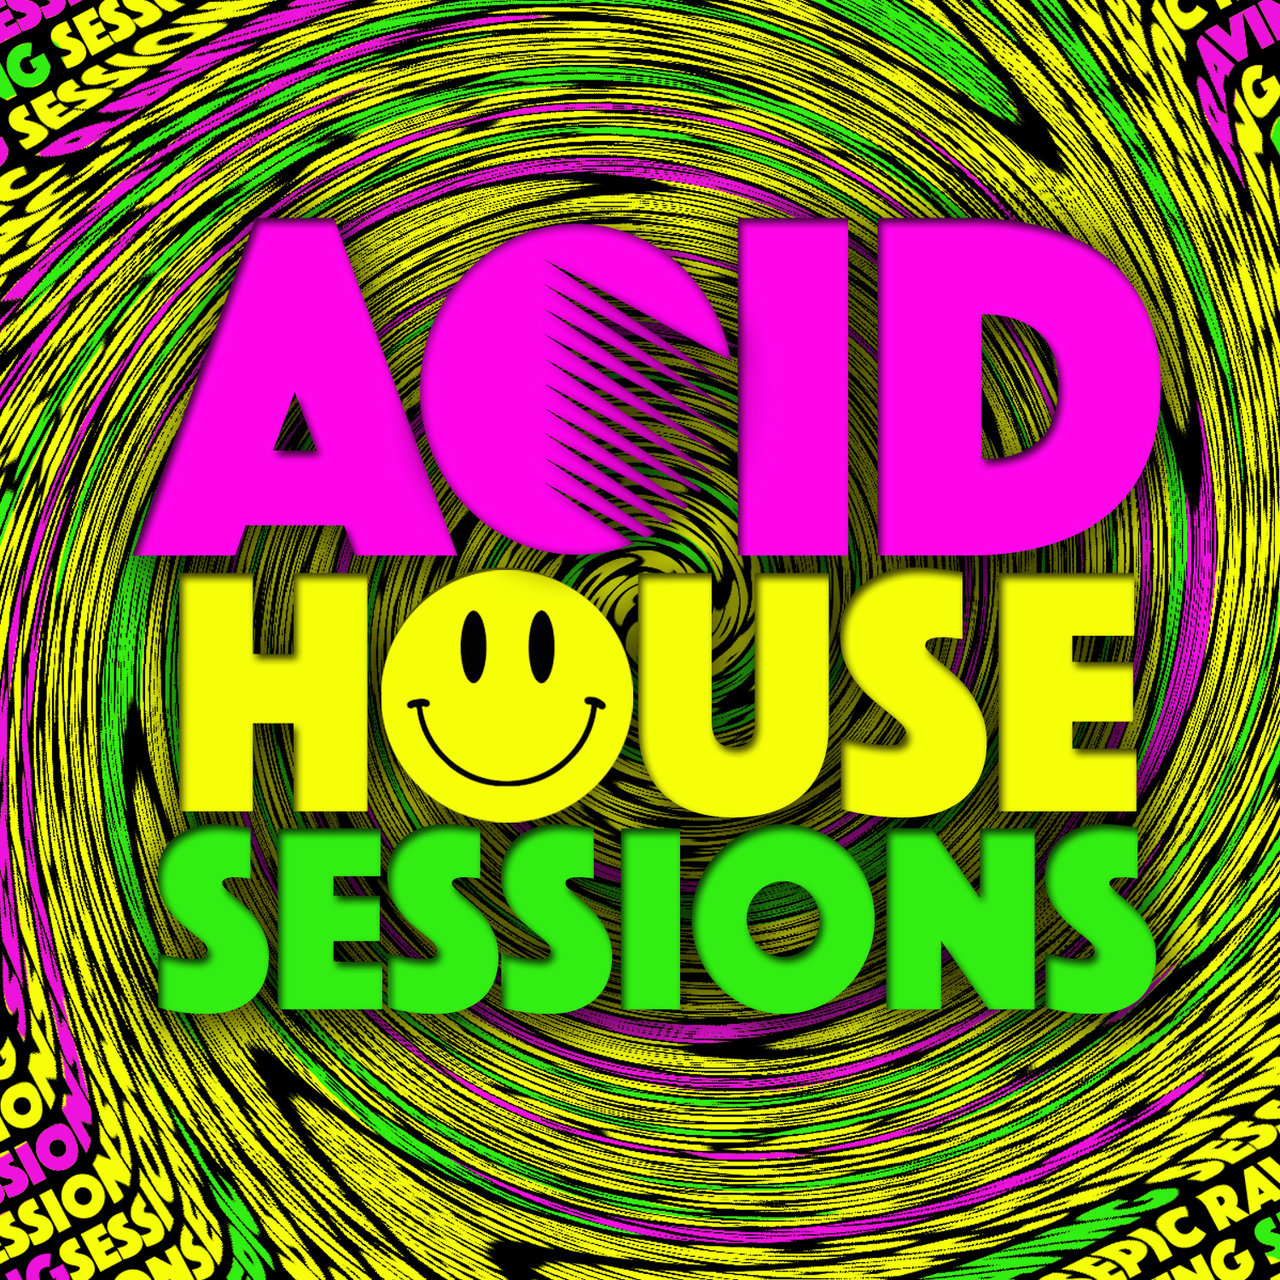 Tidal listen to acid house on tidal for Best acid house tracks